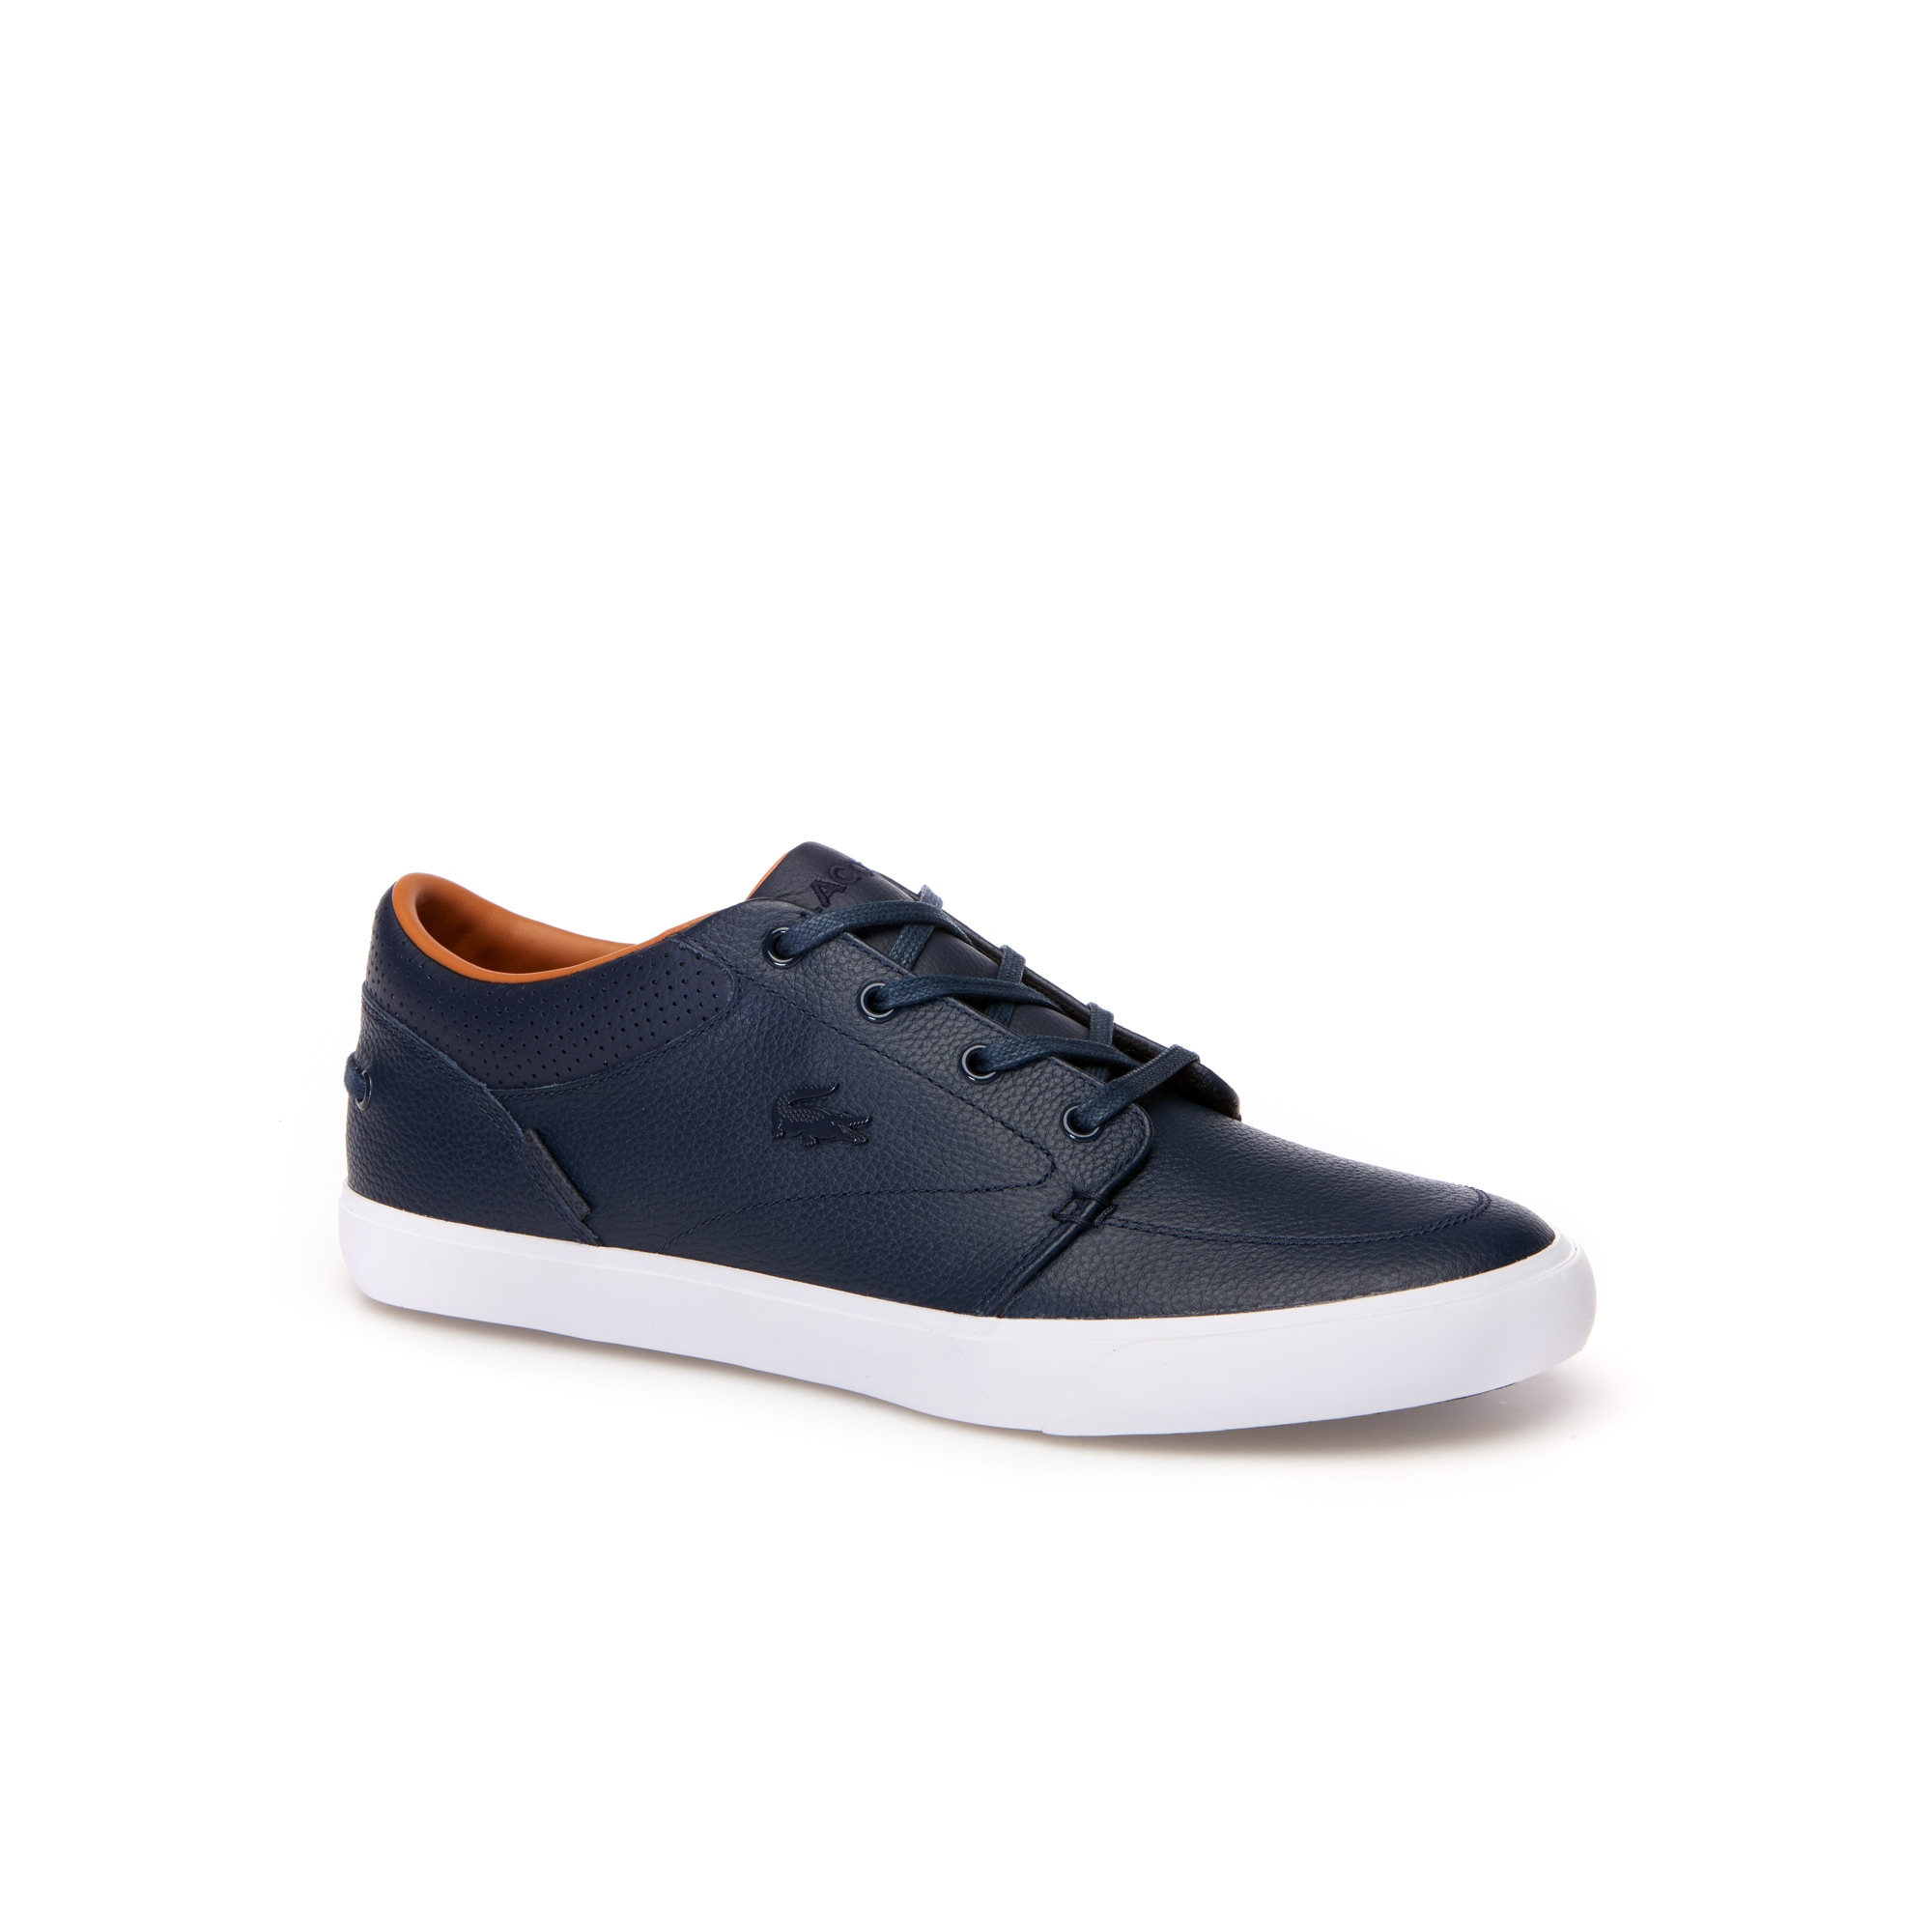 Men's Bayliss Vulc Leather Sneakers